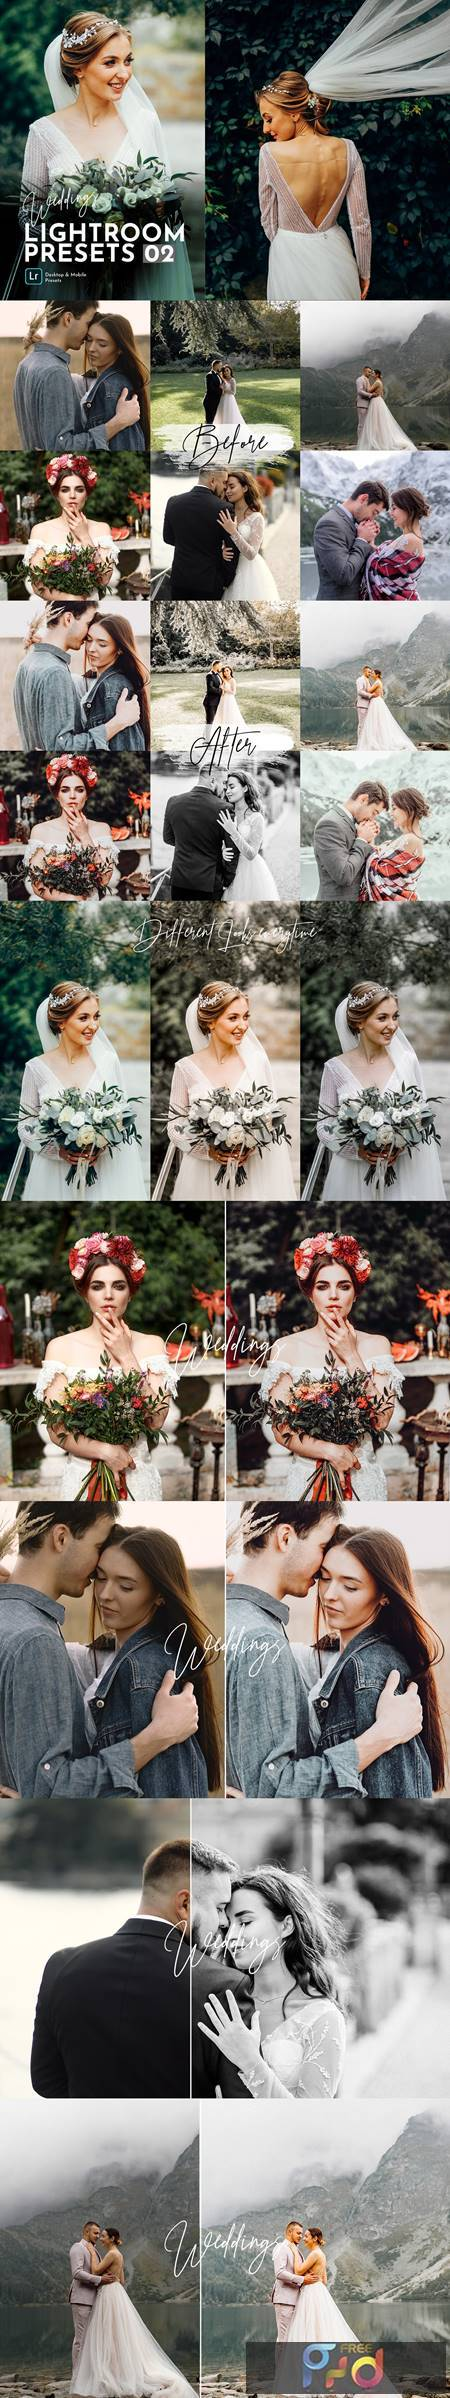 Weddings Lightroom Presets Pack 5469822 1